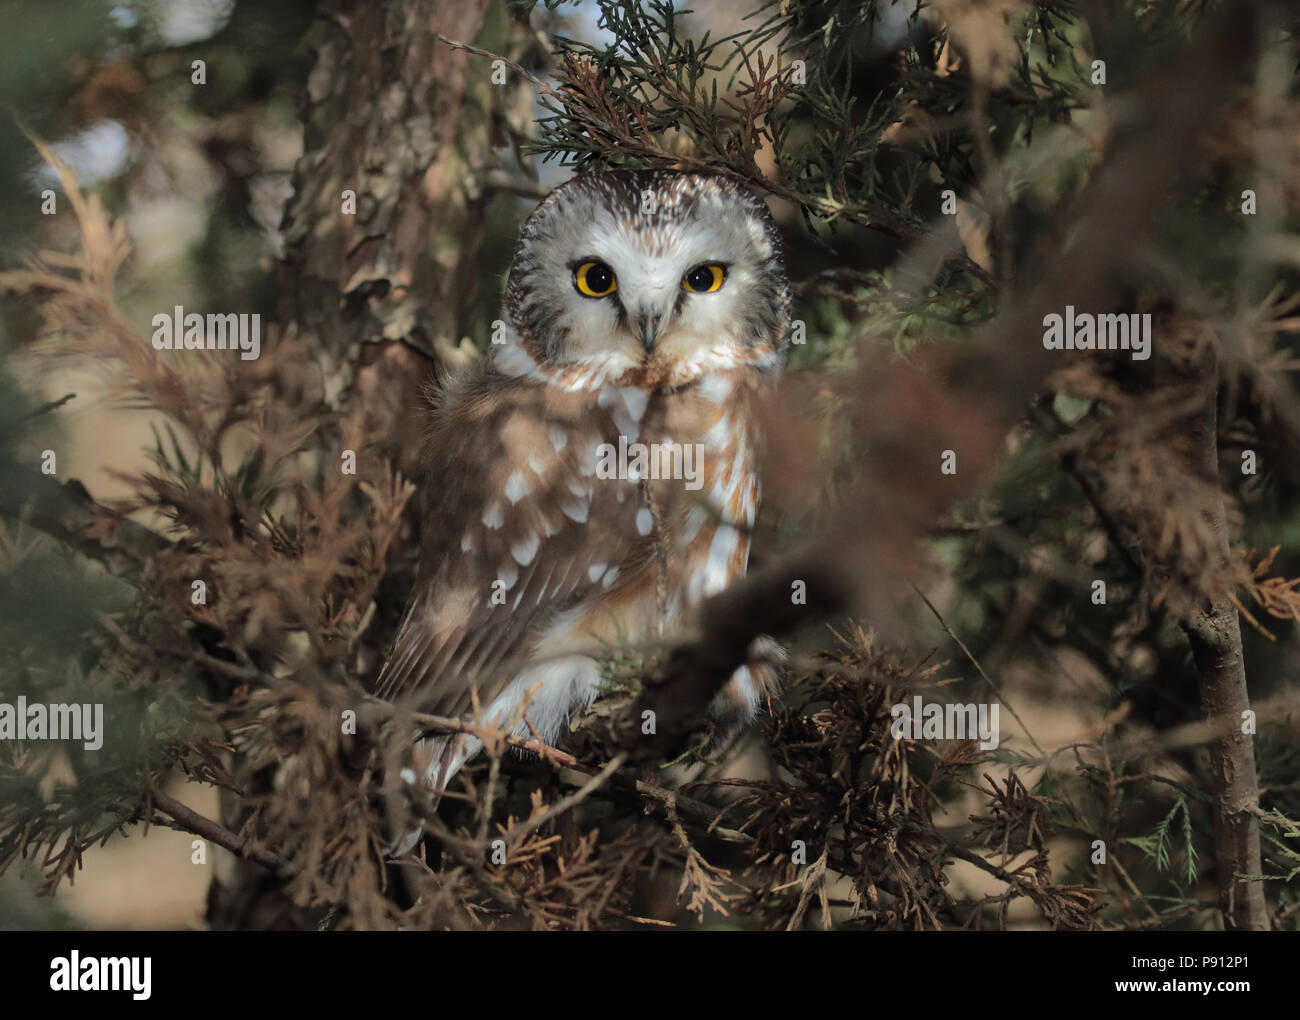 northern saw whet owl february 21st 2015 lake alvin lincoln county